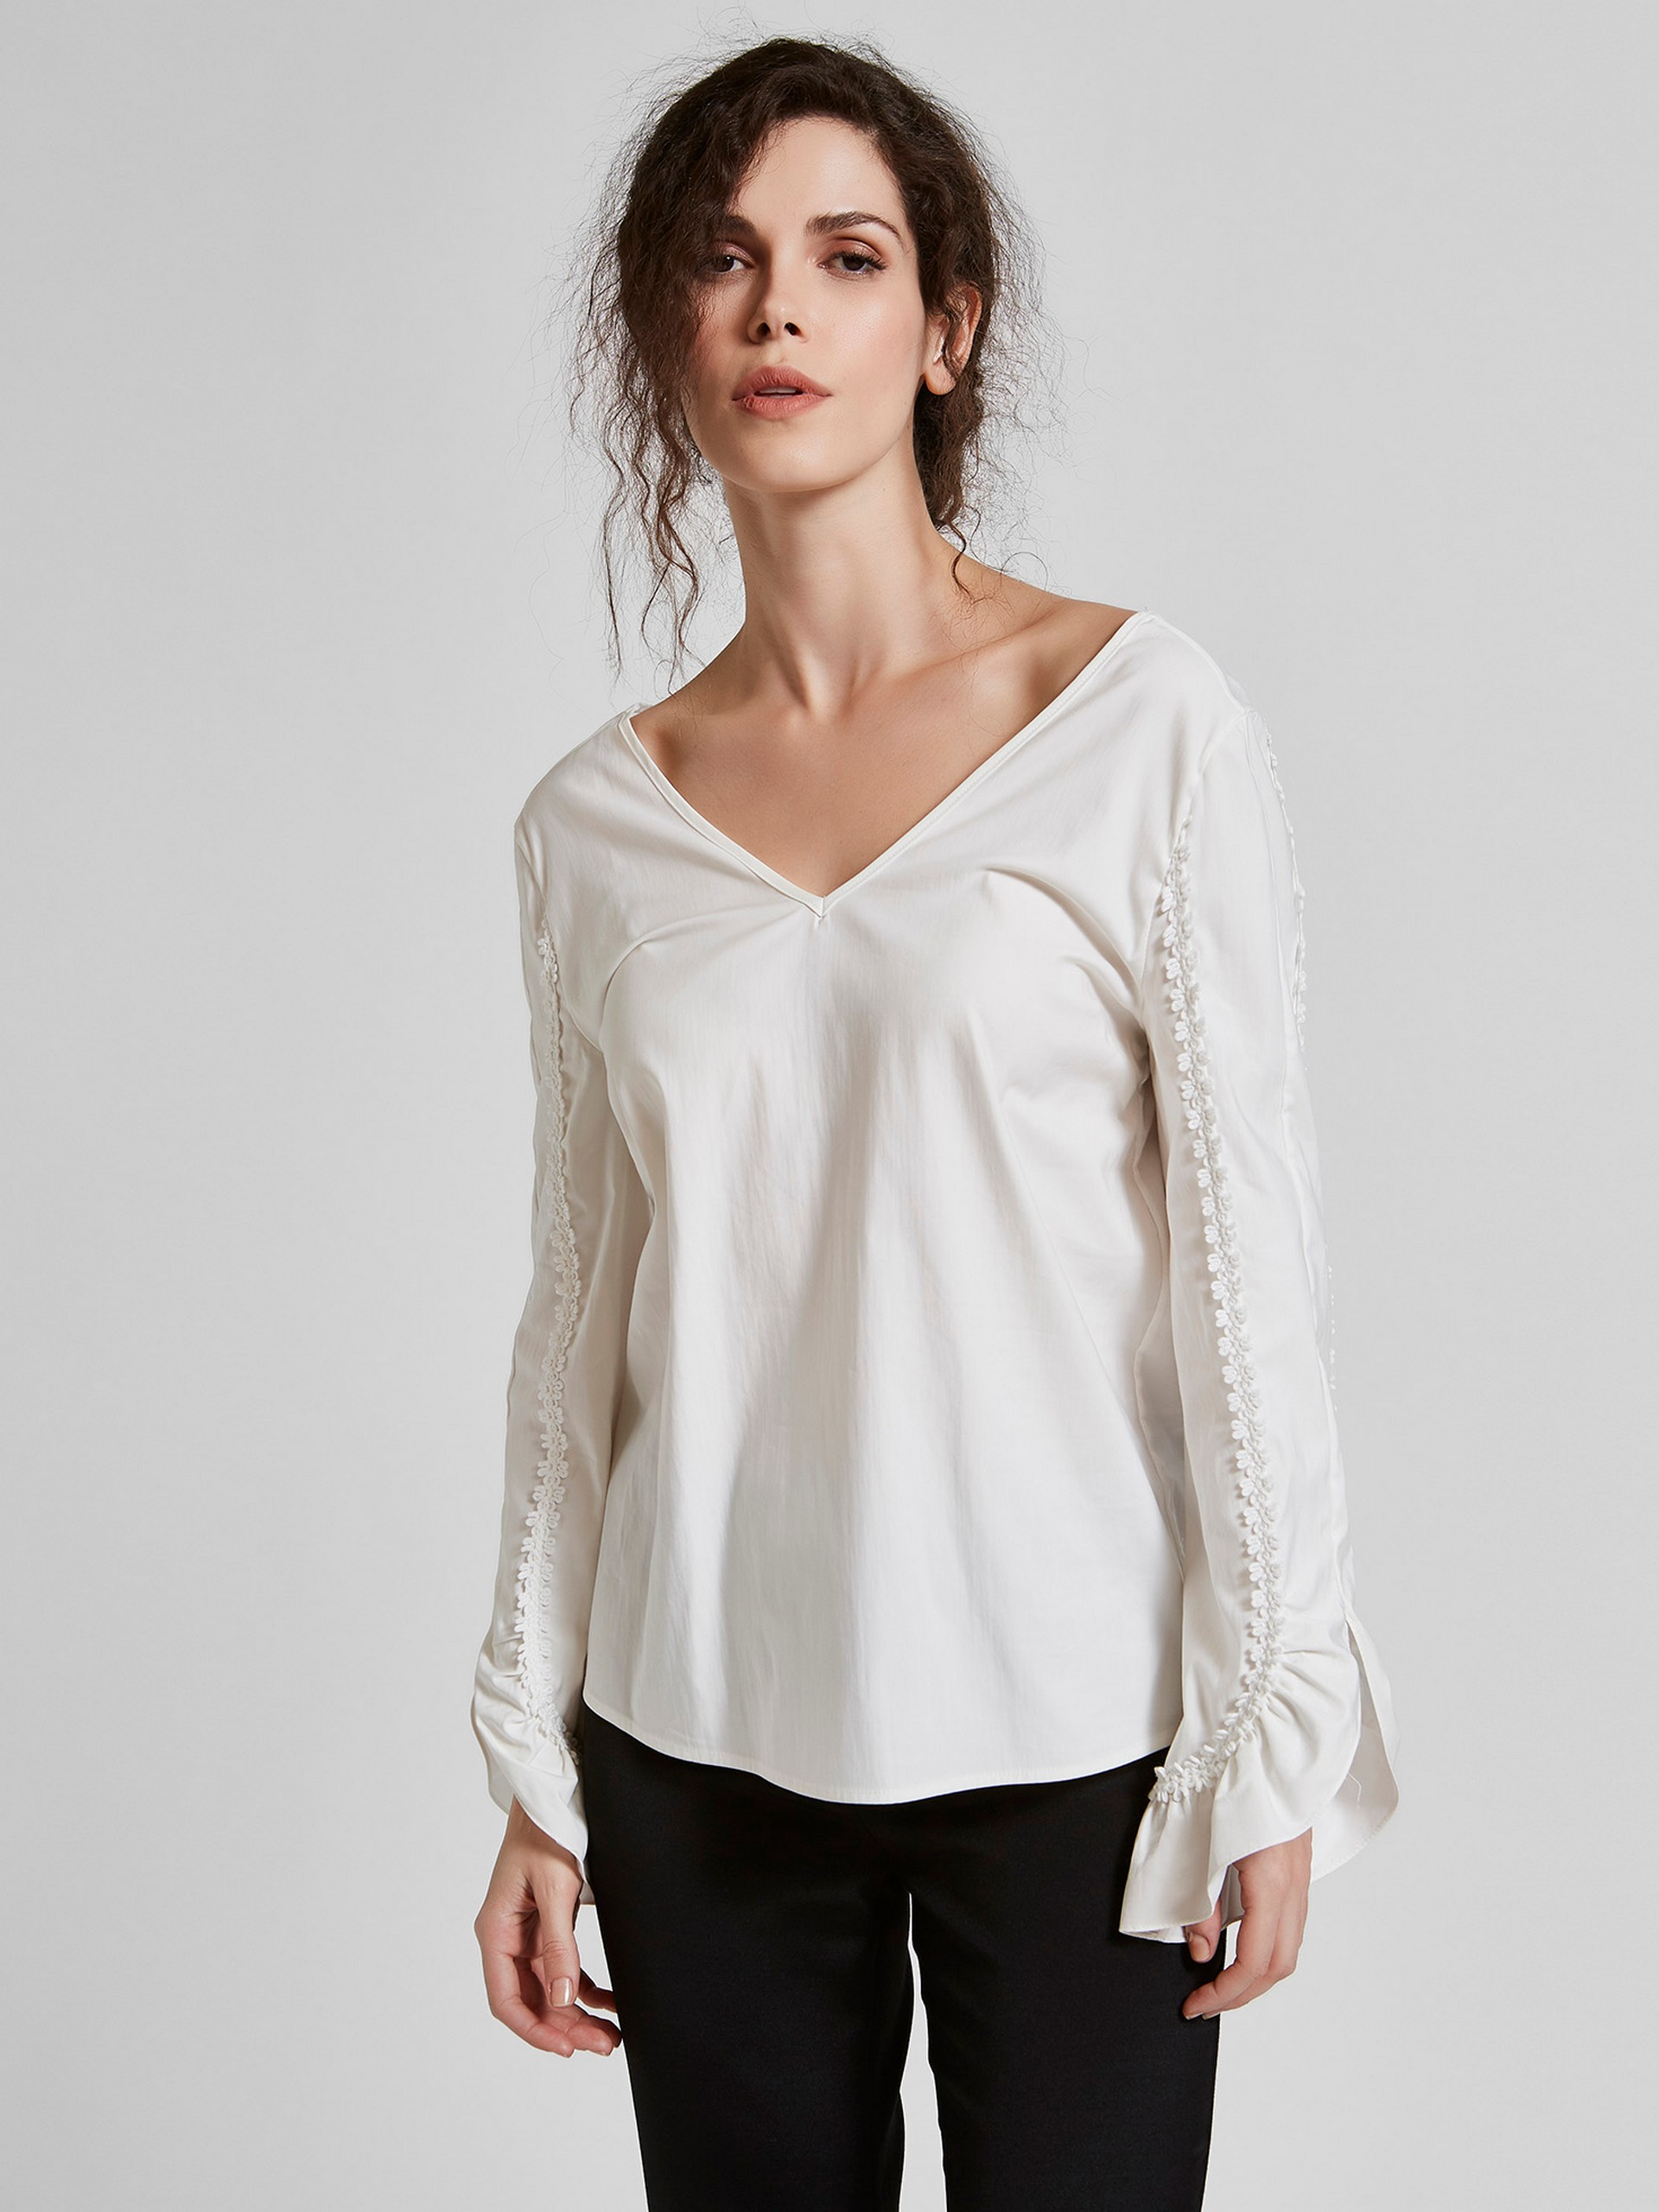 Frilly Sleeve Detailed 100% Cotton Blouse With Back Decollete